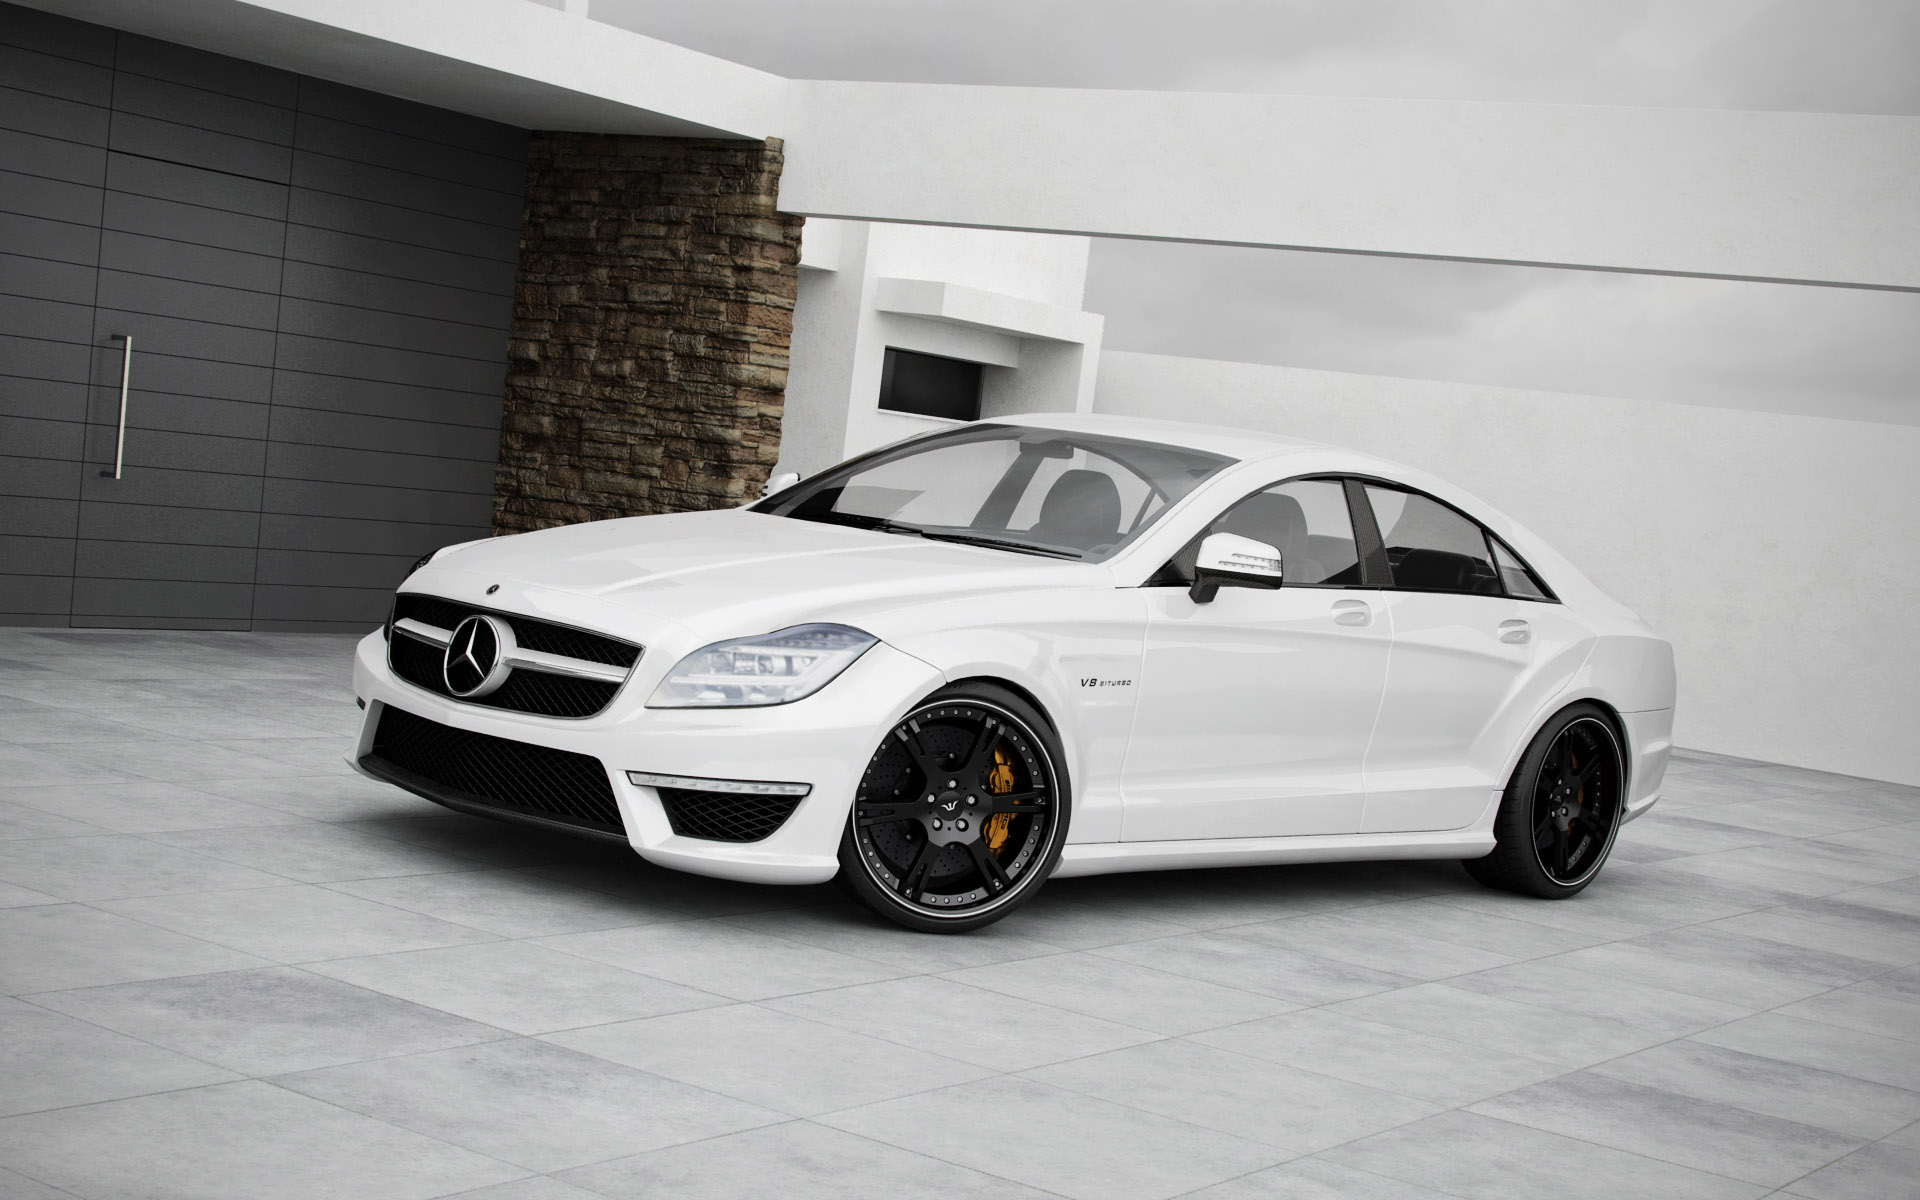 Mercedes cls63 amg wallpaper 1920x1200 17396 for Mercedes benz amg cls